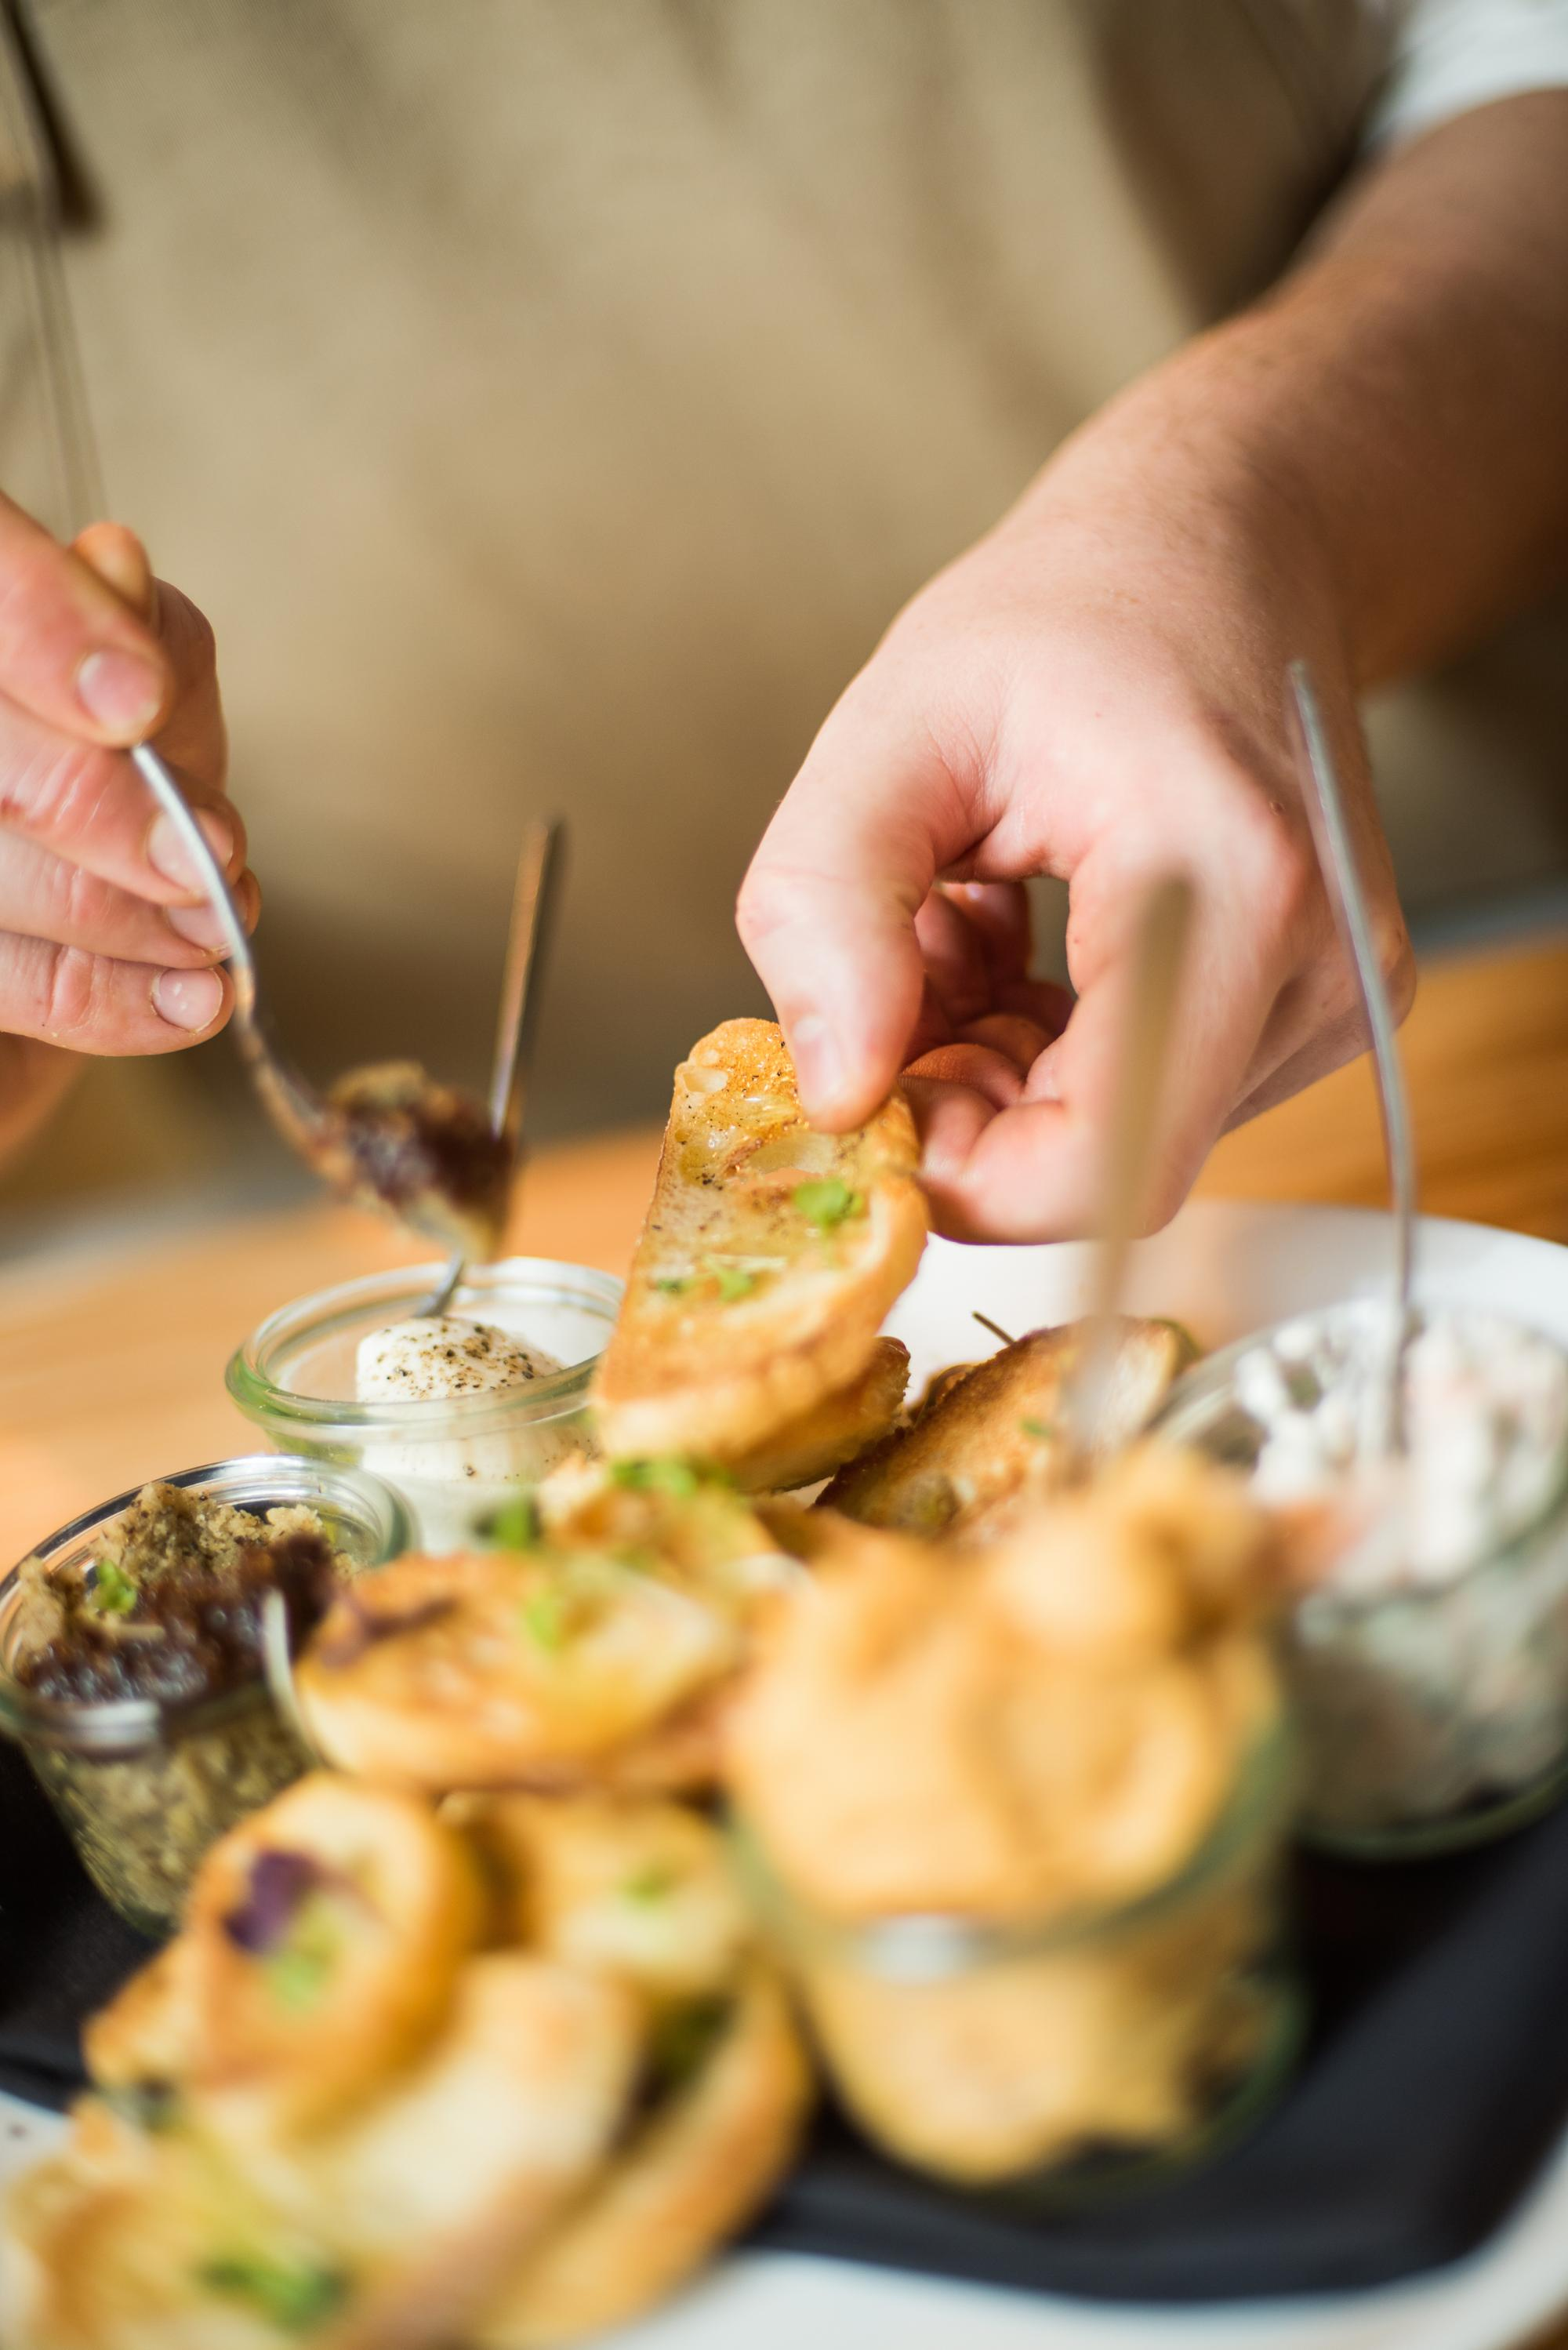 AgustÍn Kitchen specializes in farm-to-table cuisine.